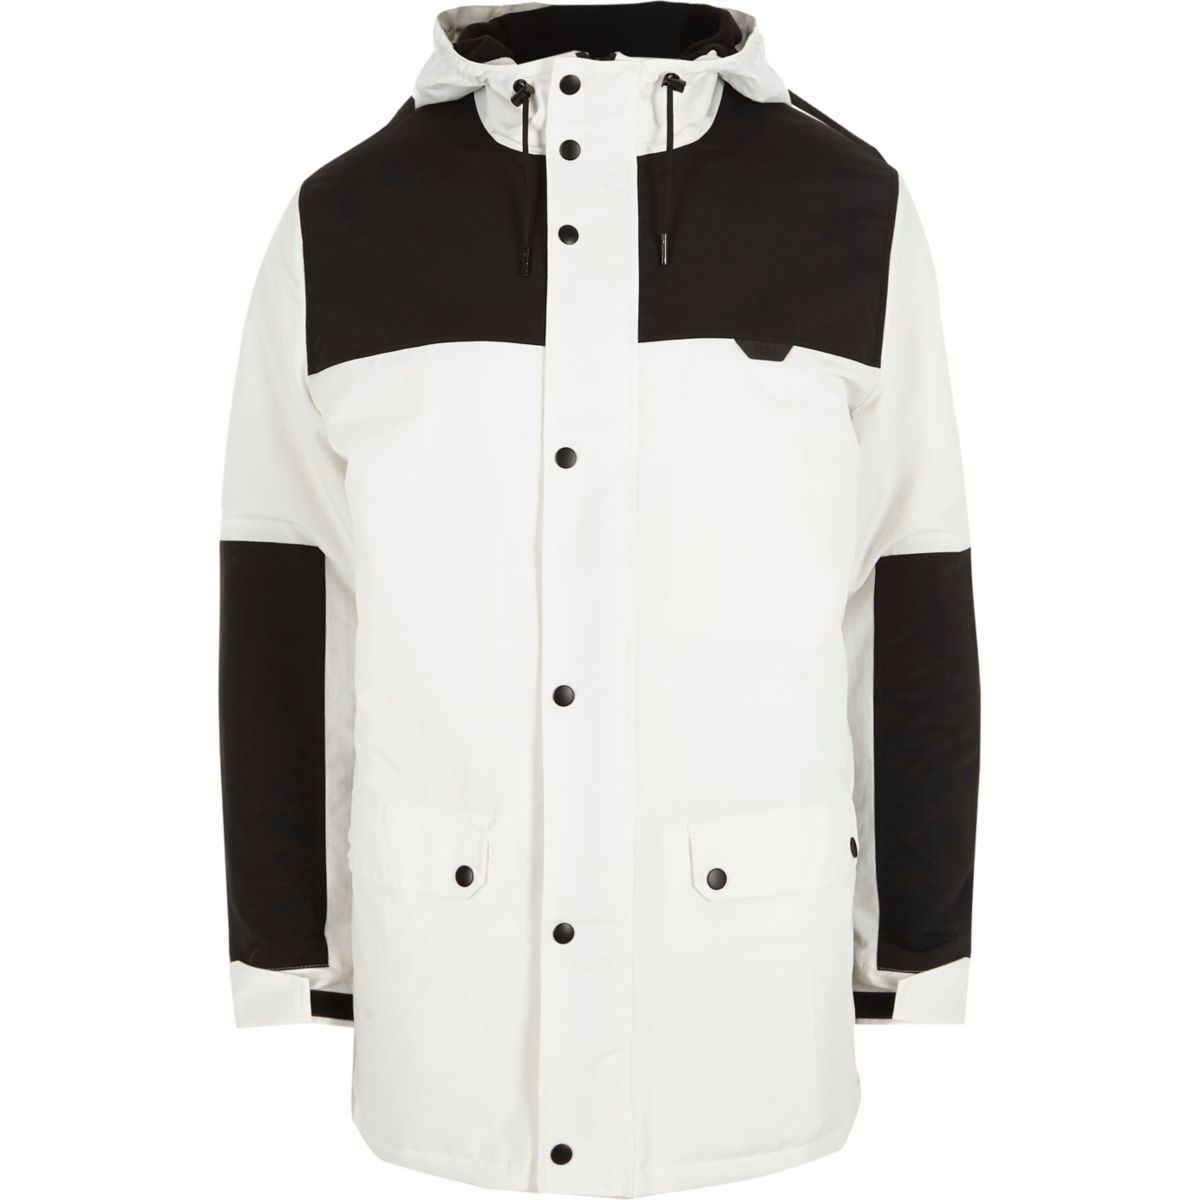 White And Black Color Block Hooded Coat by River Island